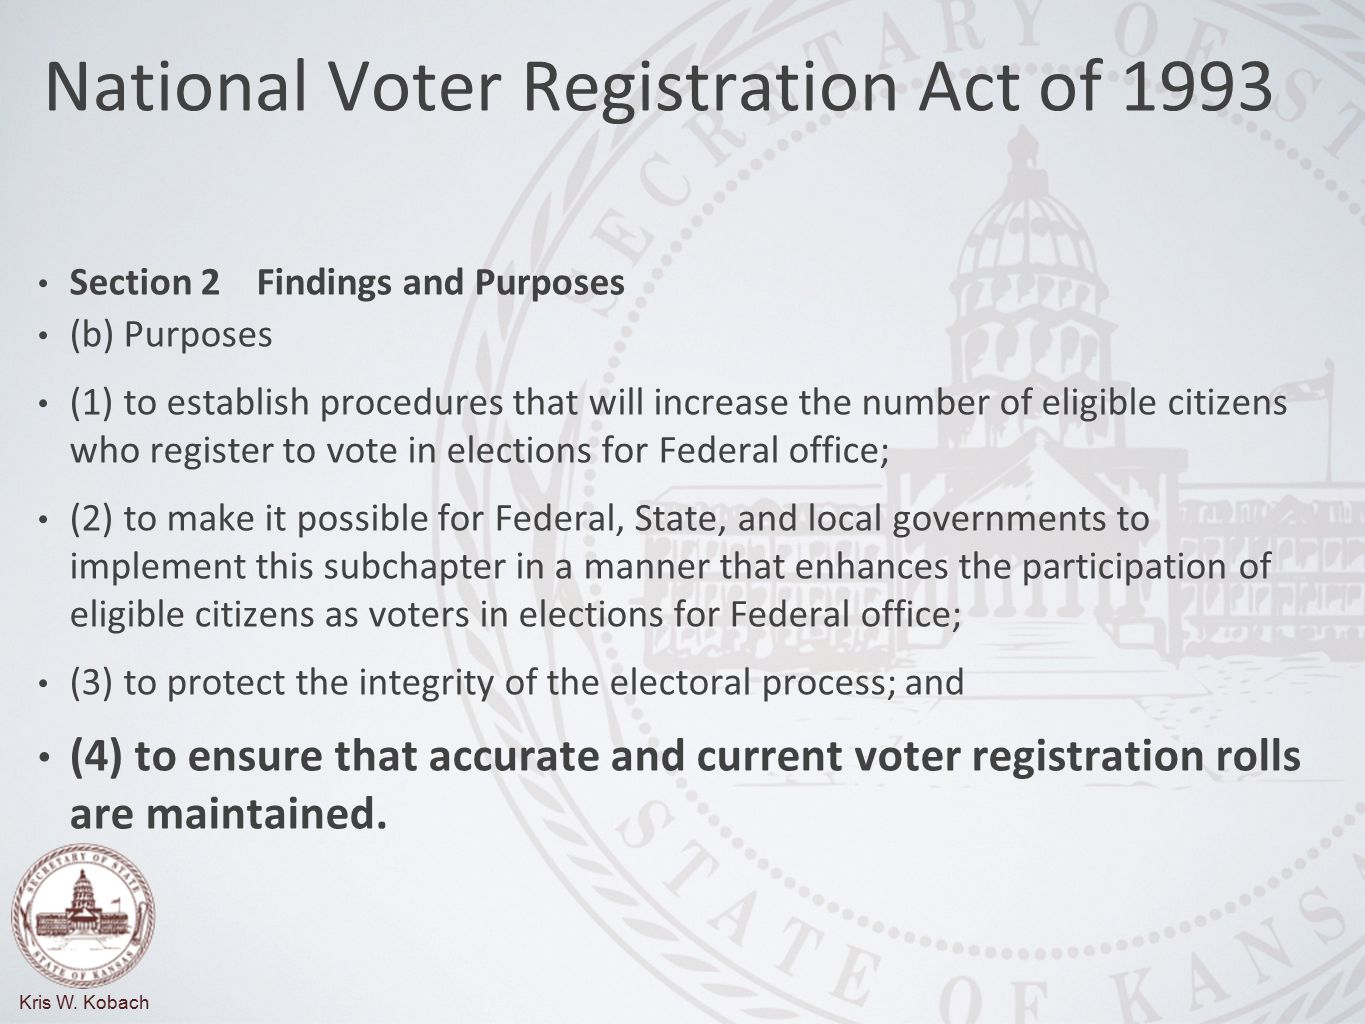 The features (of the National Voter Registration Act) include a requirement that states conduct a general program the purpose of which is to protect the integrity of the electoral process by ensuring the maintenance of an accurate and current voter registration roll for elections for Federal office From the Federal Election Commission's guide: Implementing the National Voter Registration Act of 1993: